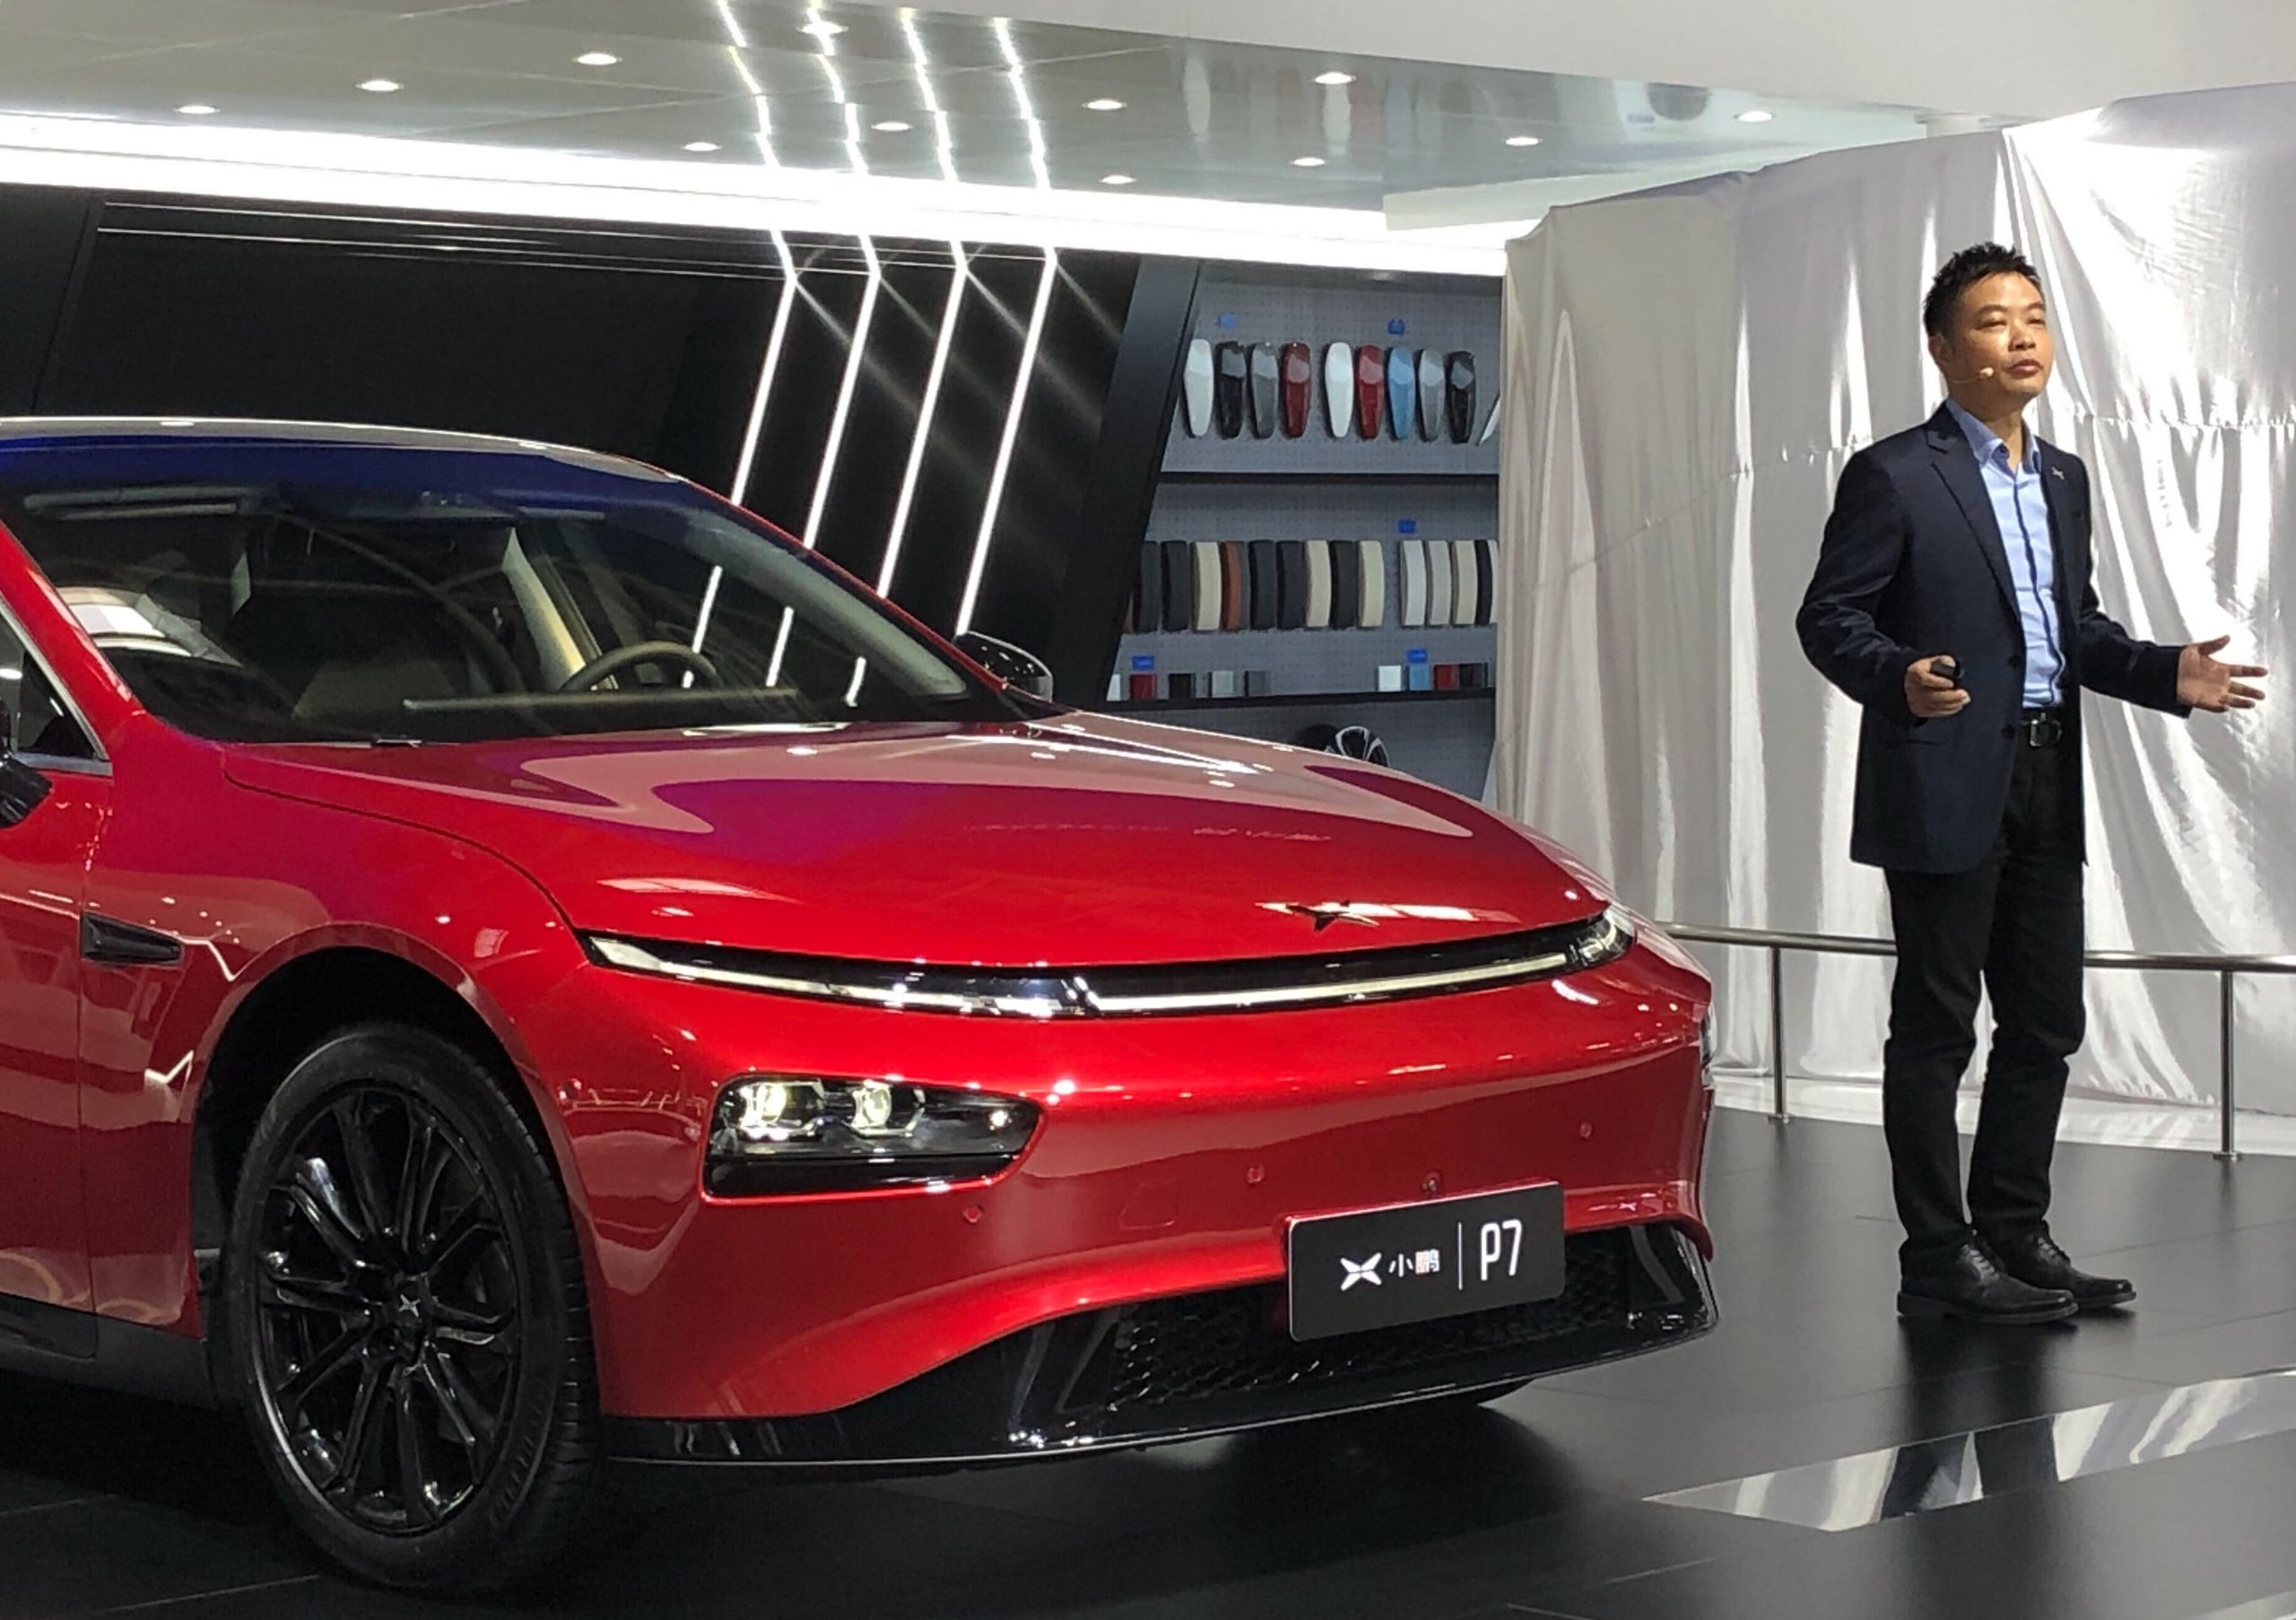 Tesla's Chinese rival, Xpeng, gets $ 76 million in financing from the government